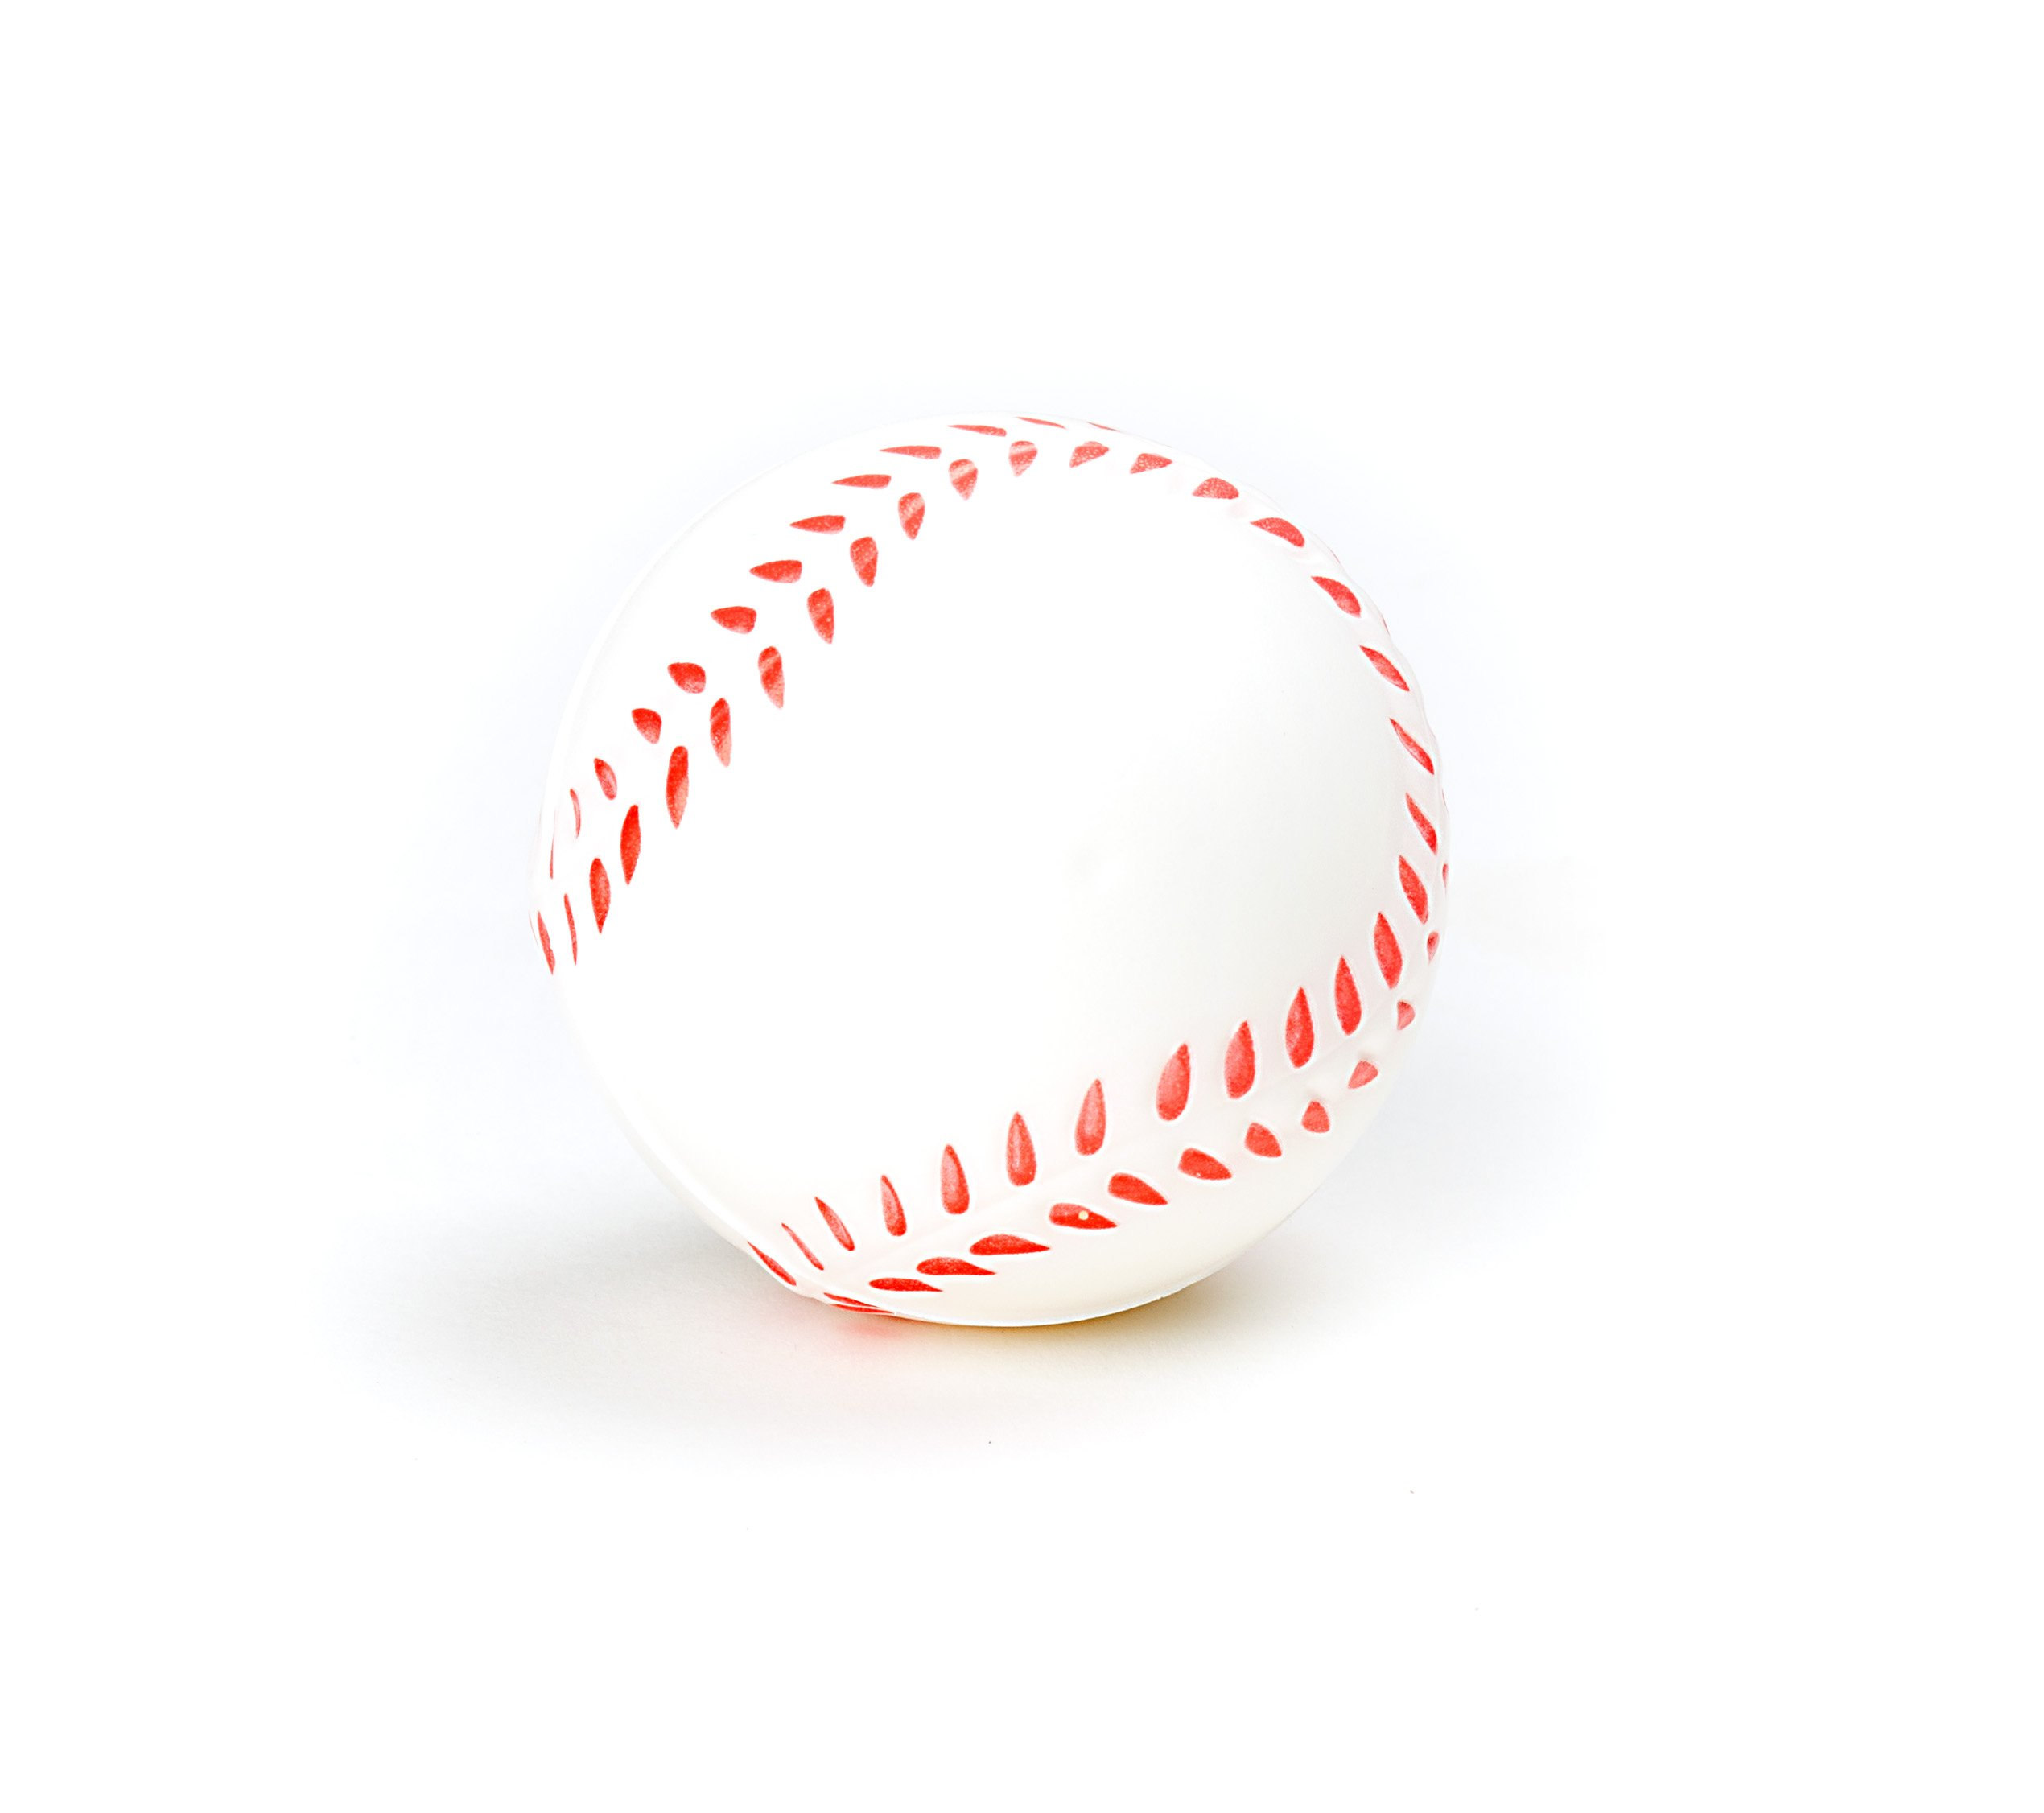 Baseball Sports Themed 2.5-Inch Foam Squeeze Balls for Stress Relief, Relaxable Realistic Baseball Sport Balls - Bulk 1 Dozen by Neliblu (Image #5)